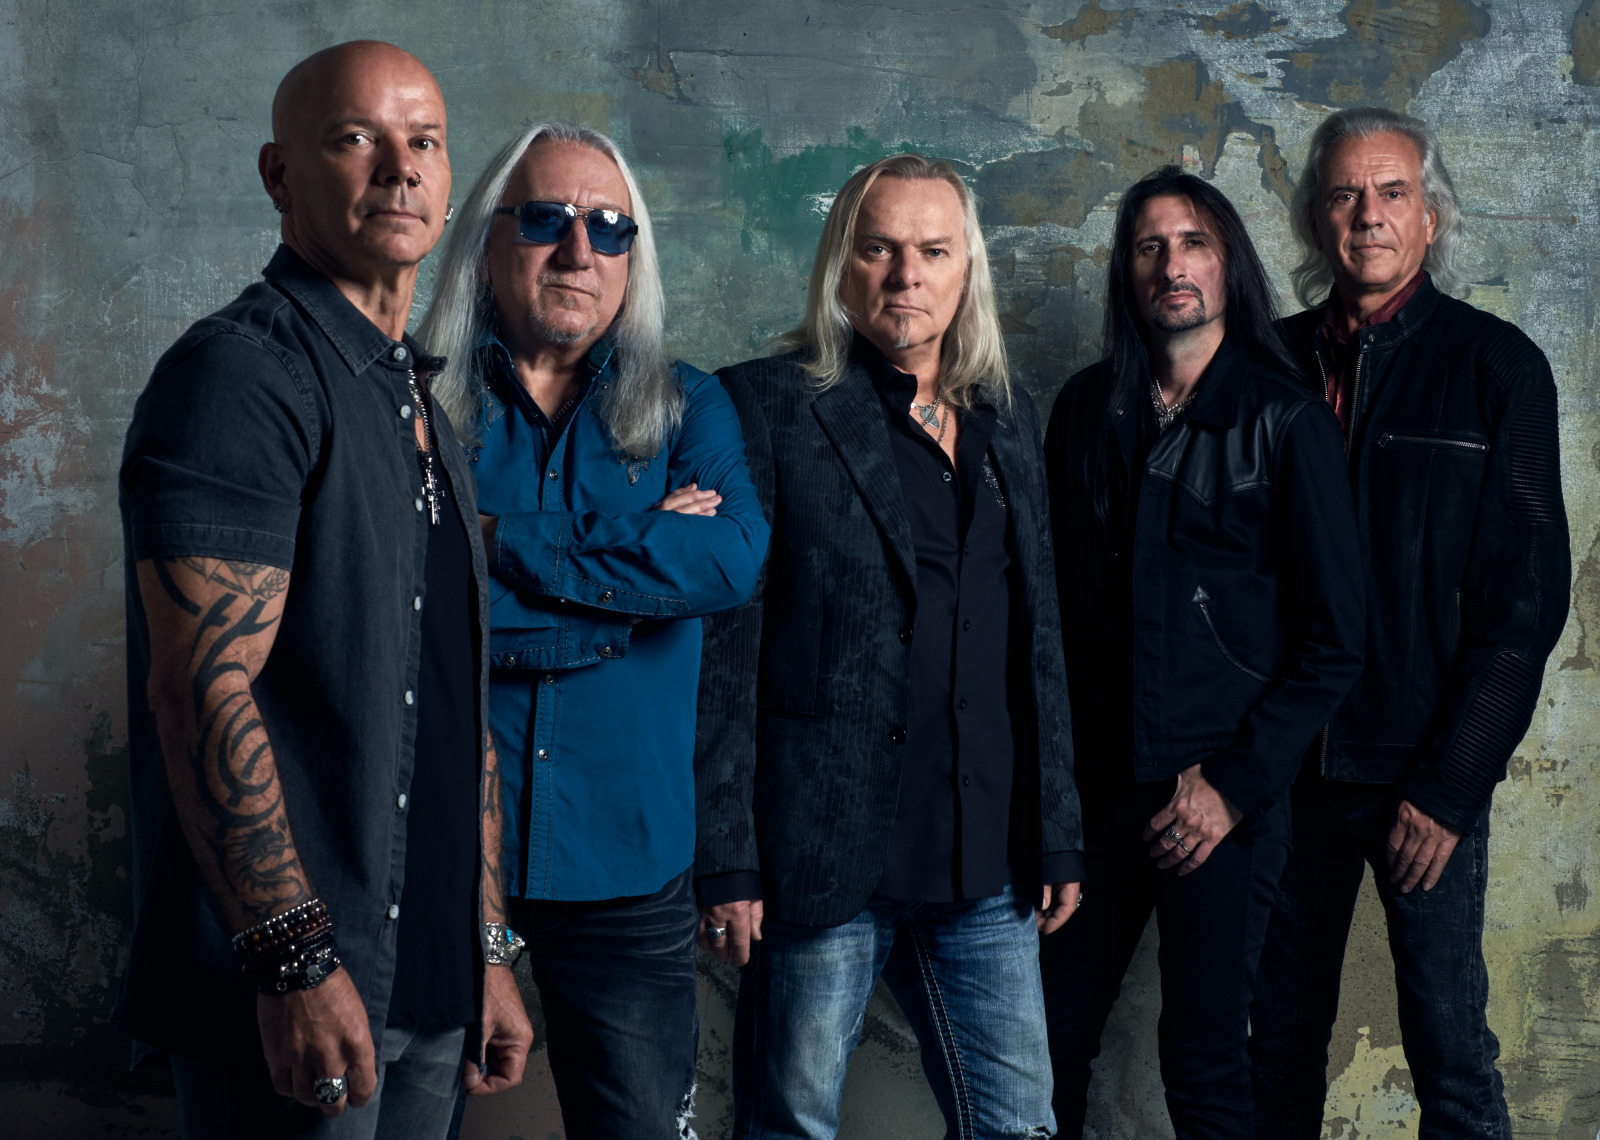 Uriah Heep To Release Living The Dream September 14th Via Frontiers Music Srl First Video And Single Streaming Now All About The Rock